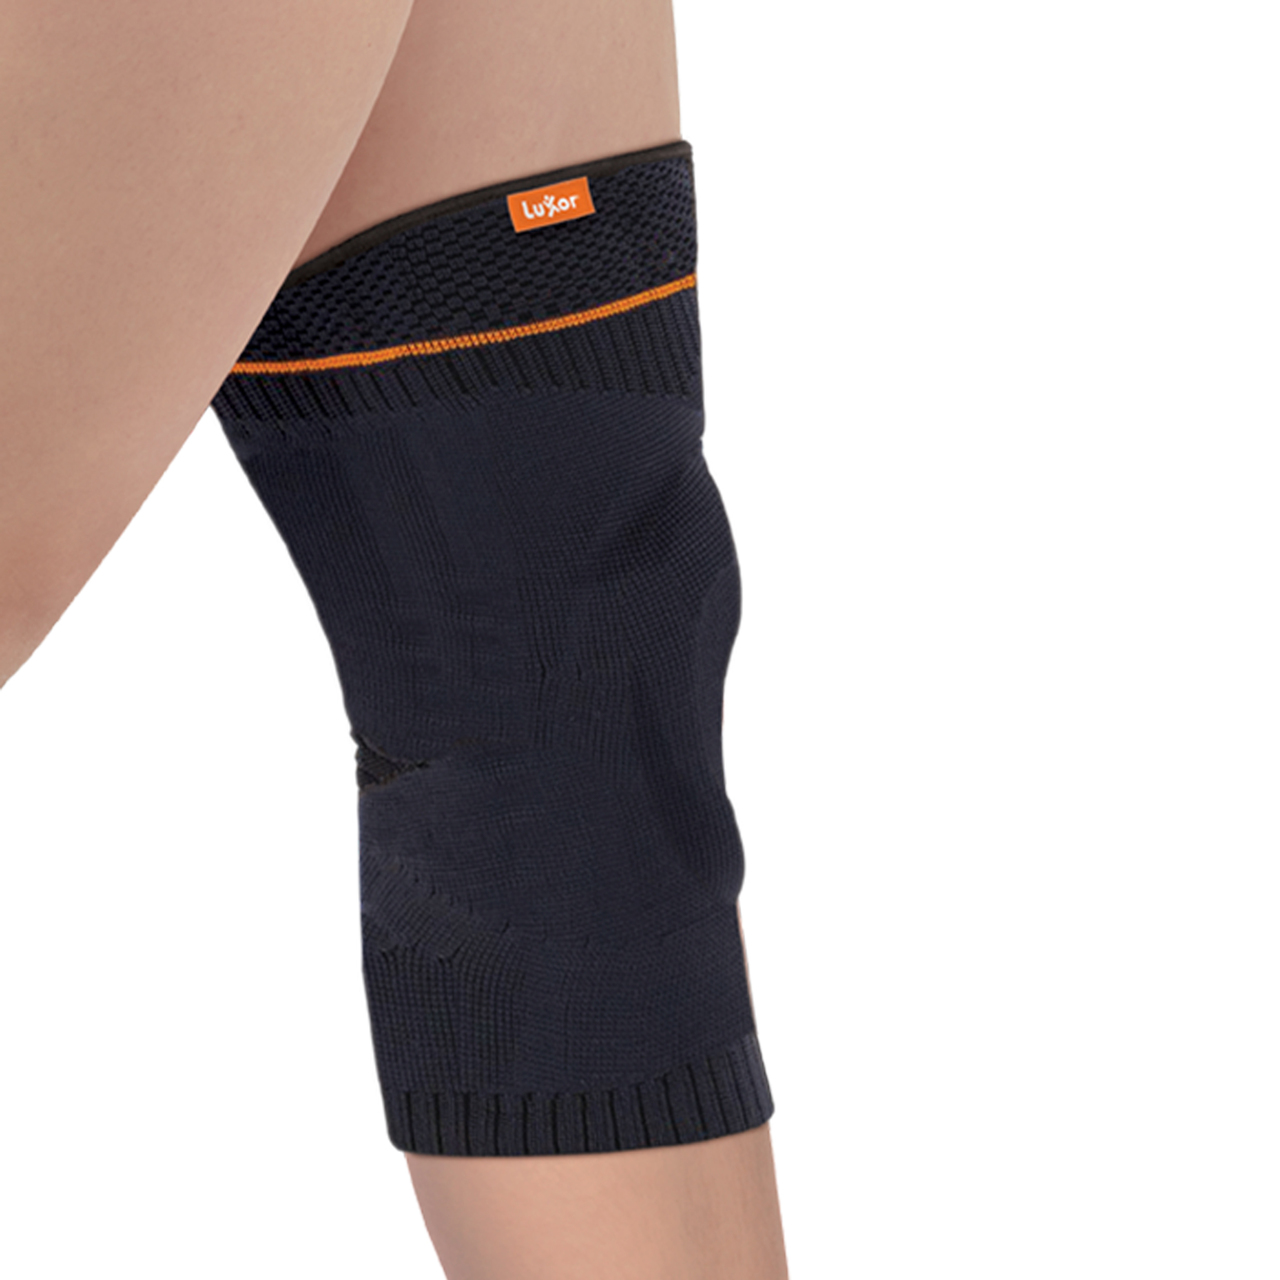 a76841d214 Patella and Ligament Assisted Knee Support. Loading zoom